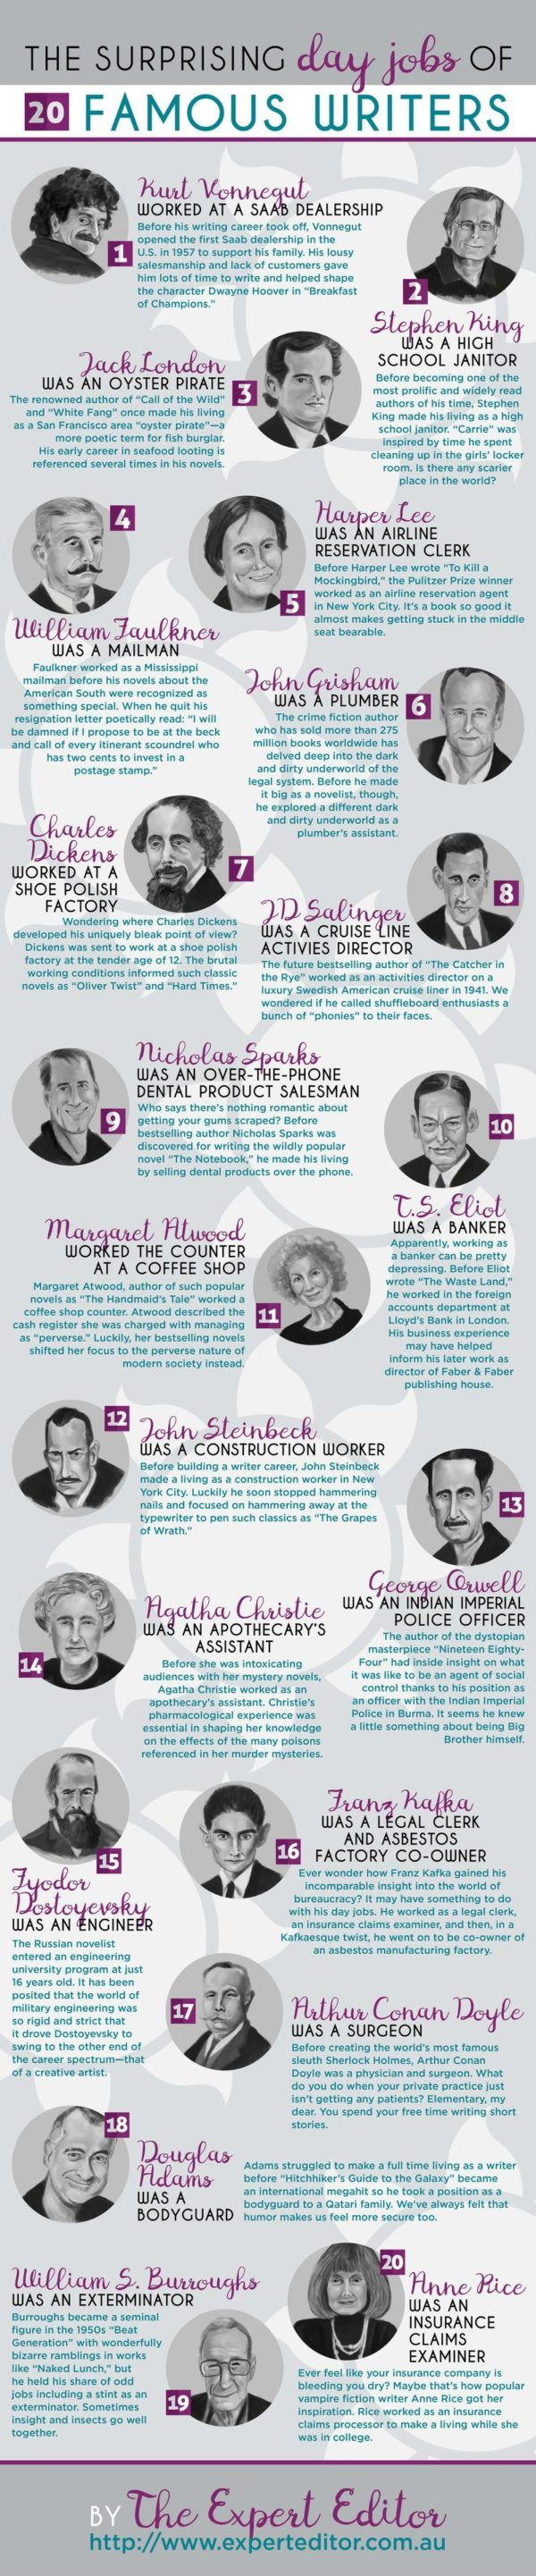 #Infographic: Surprising day jobs of 20 famous #authors